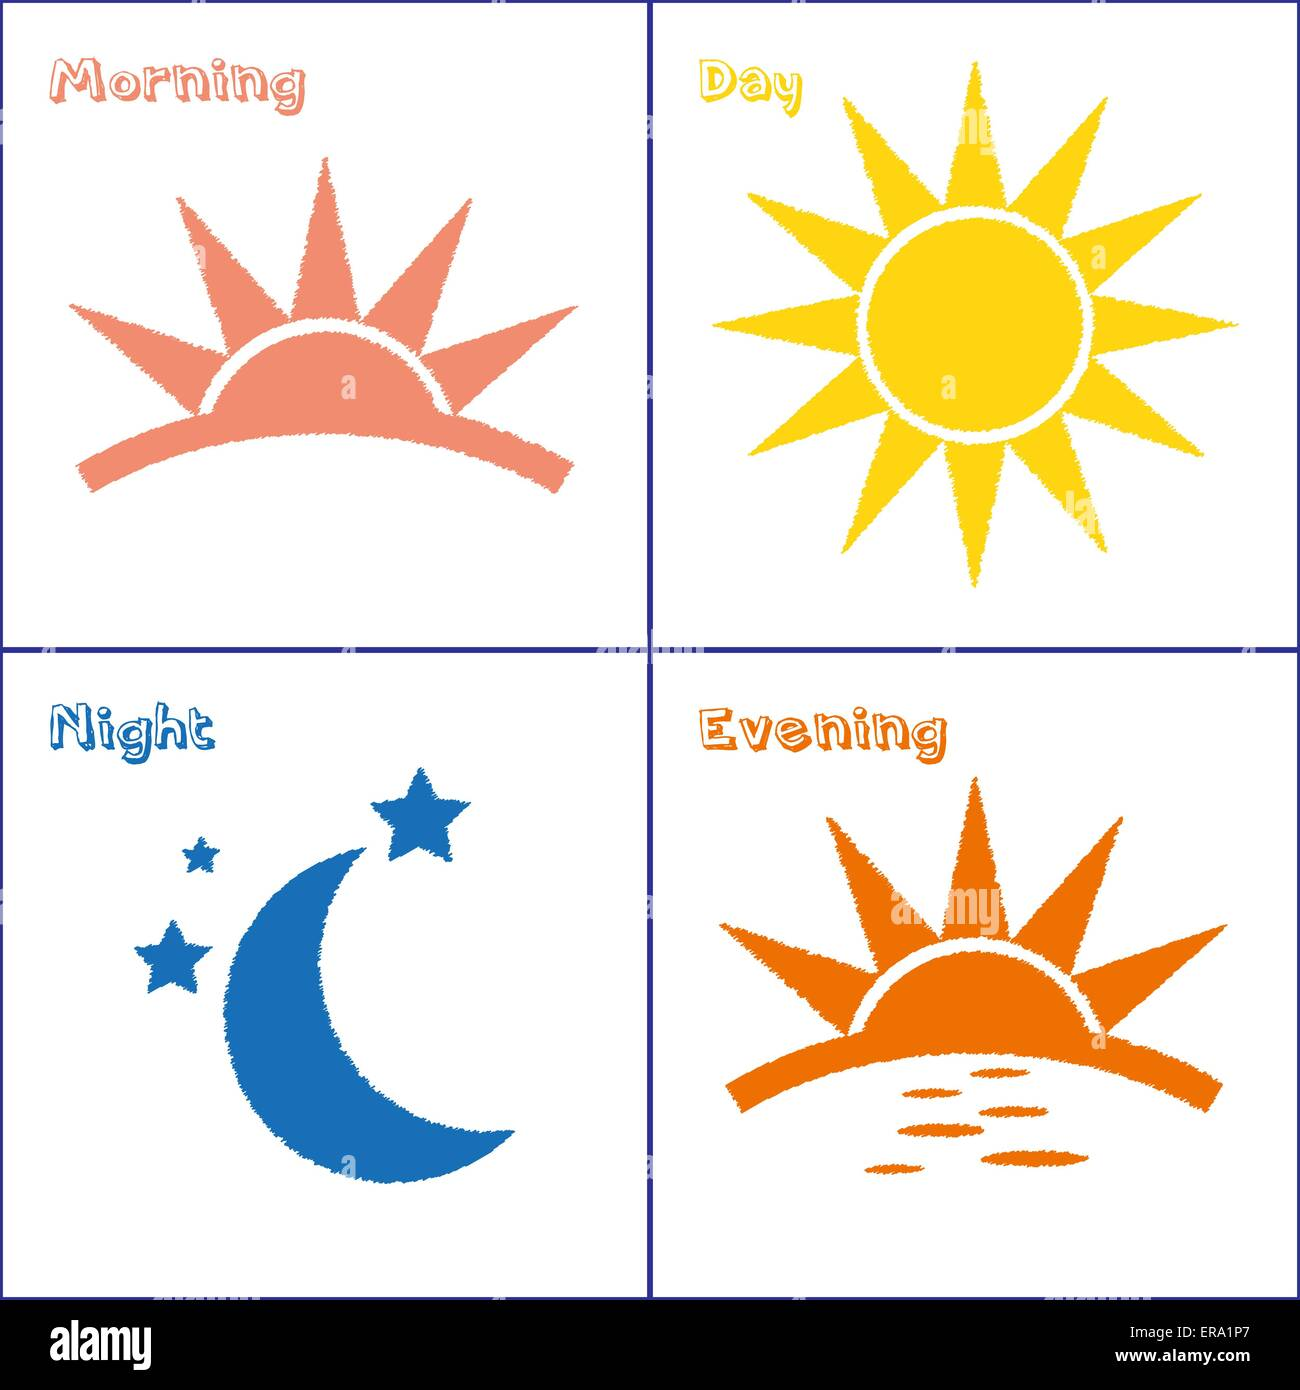 Sun And Moon Morning Day Evening Night Handdrawn Vector